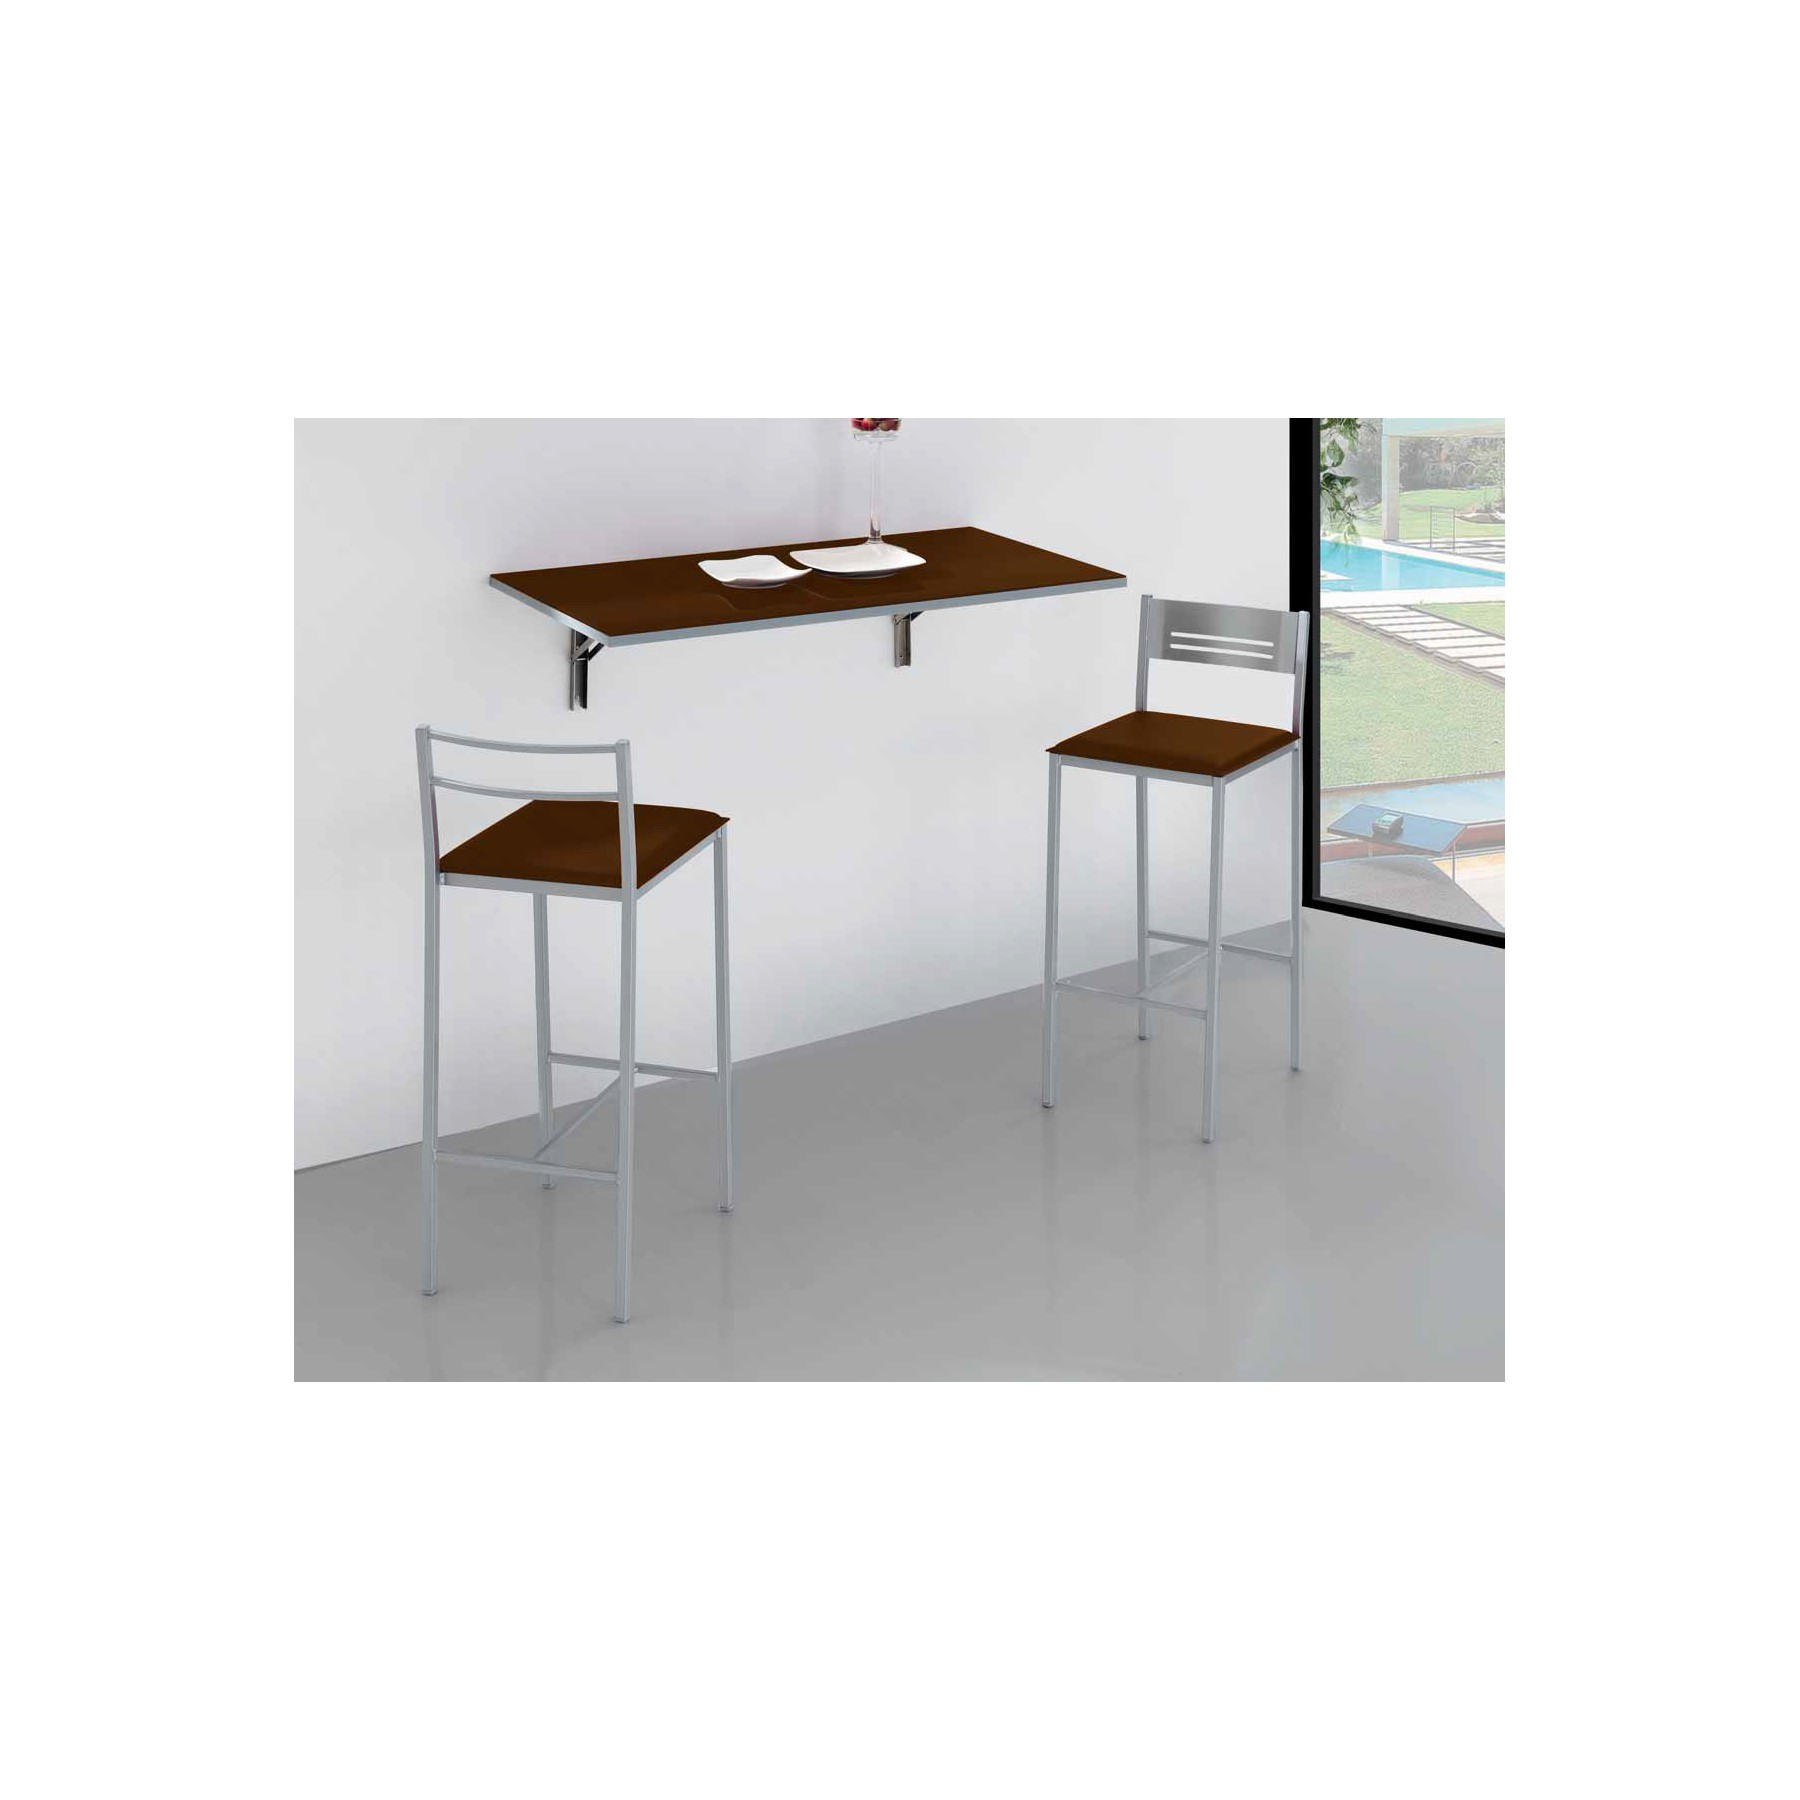 Mesa de cocina de pared plegable simple dkg for Mesas de cocina economicas